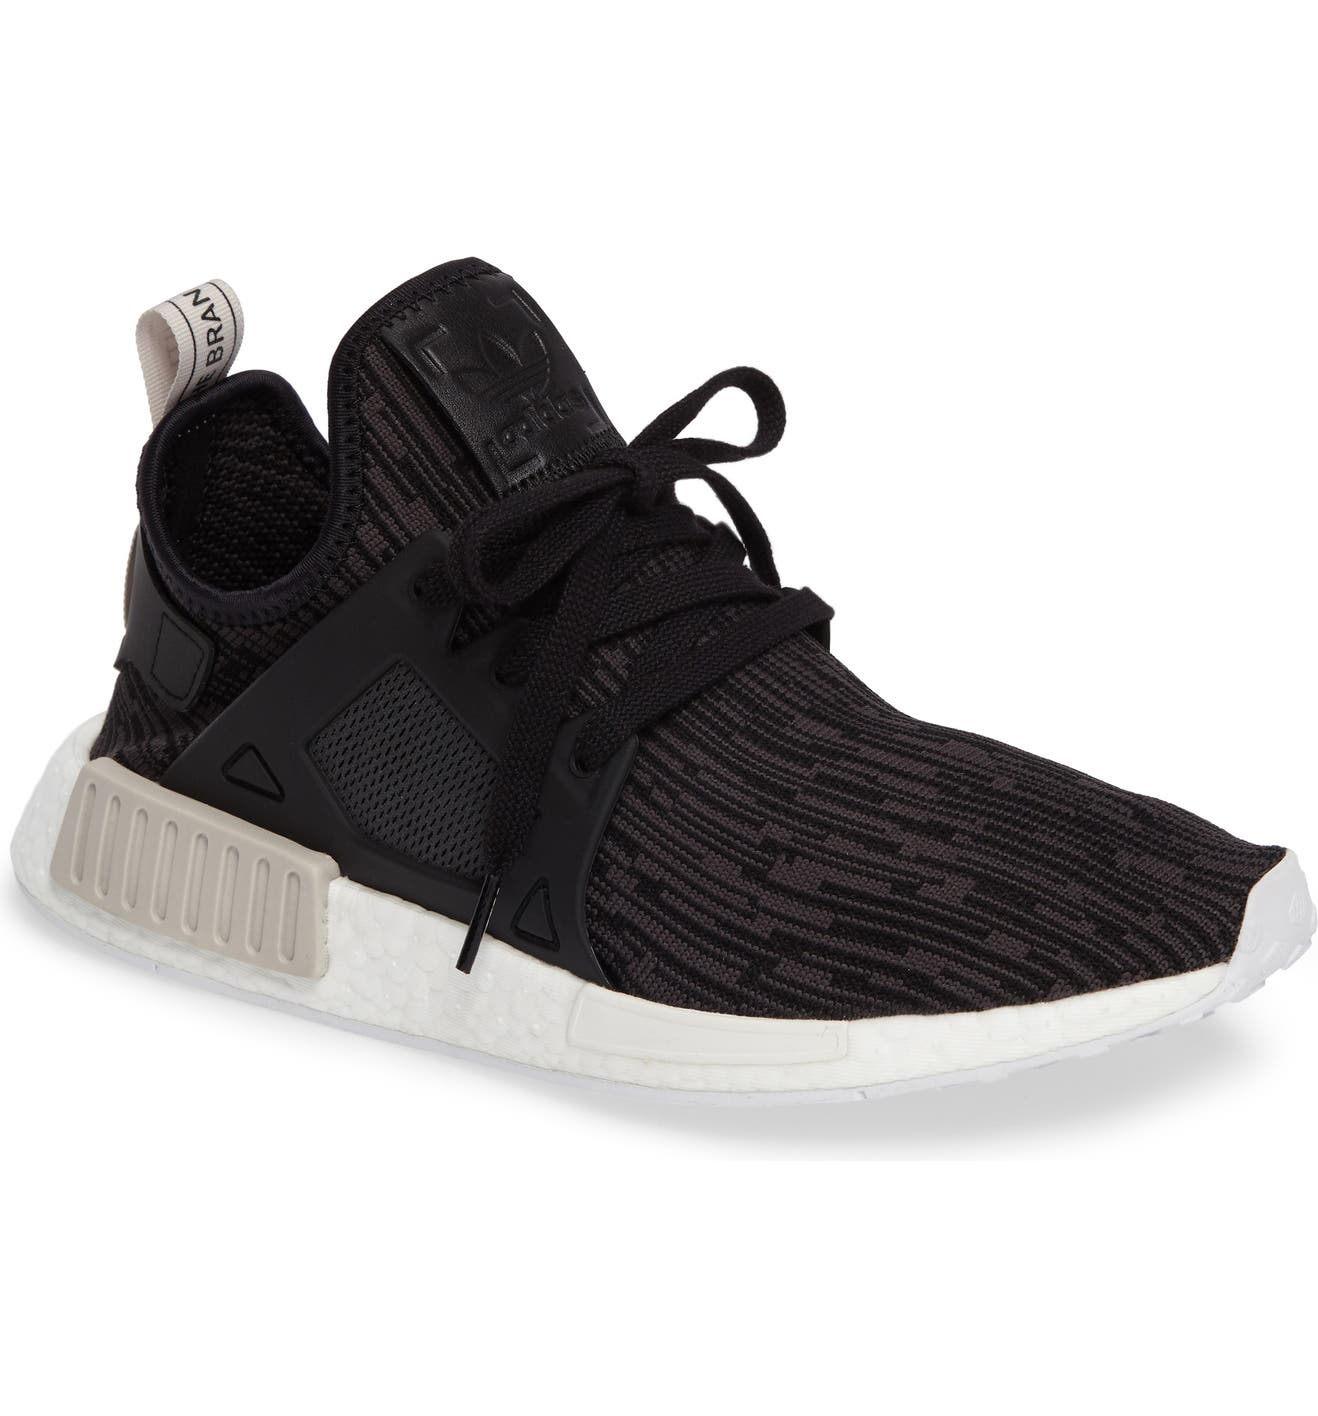 on sale a9d20 8bc22 NMD XR1 Athletic Shoe